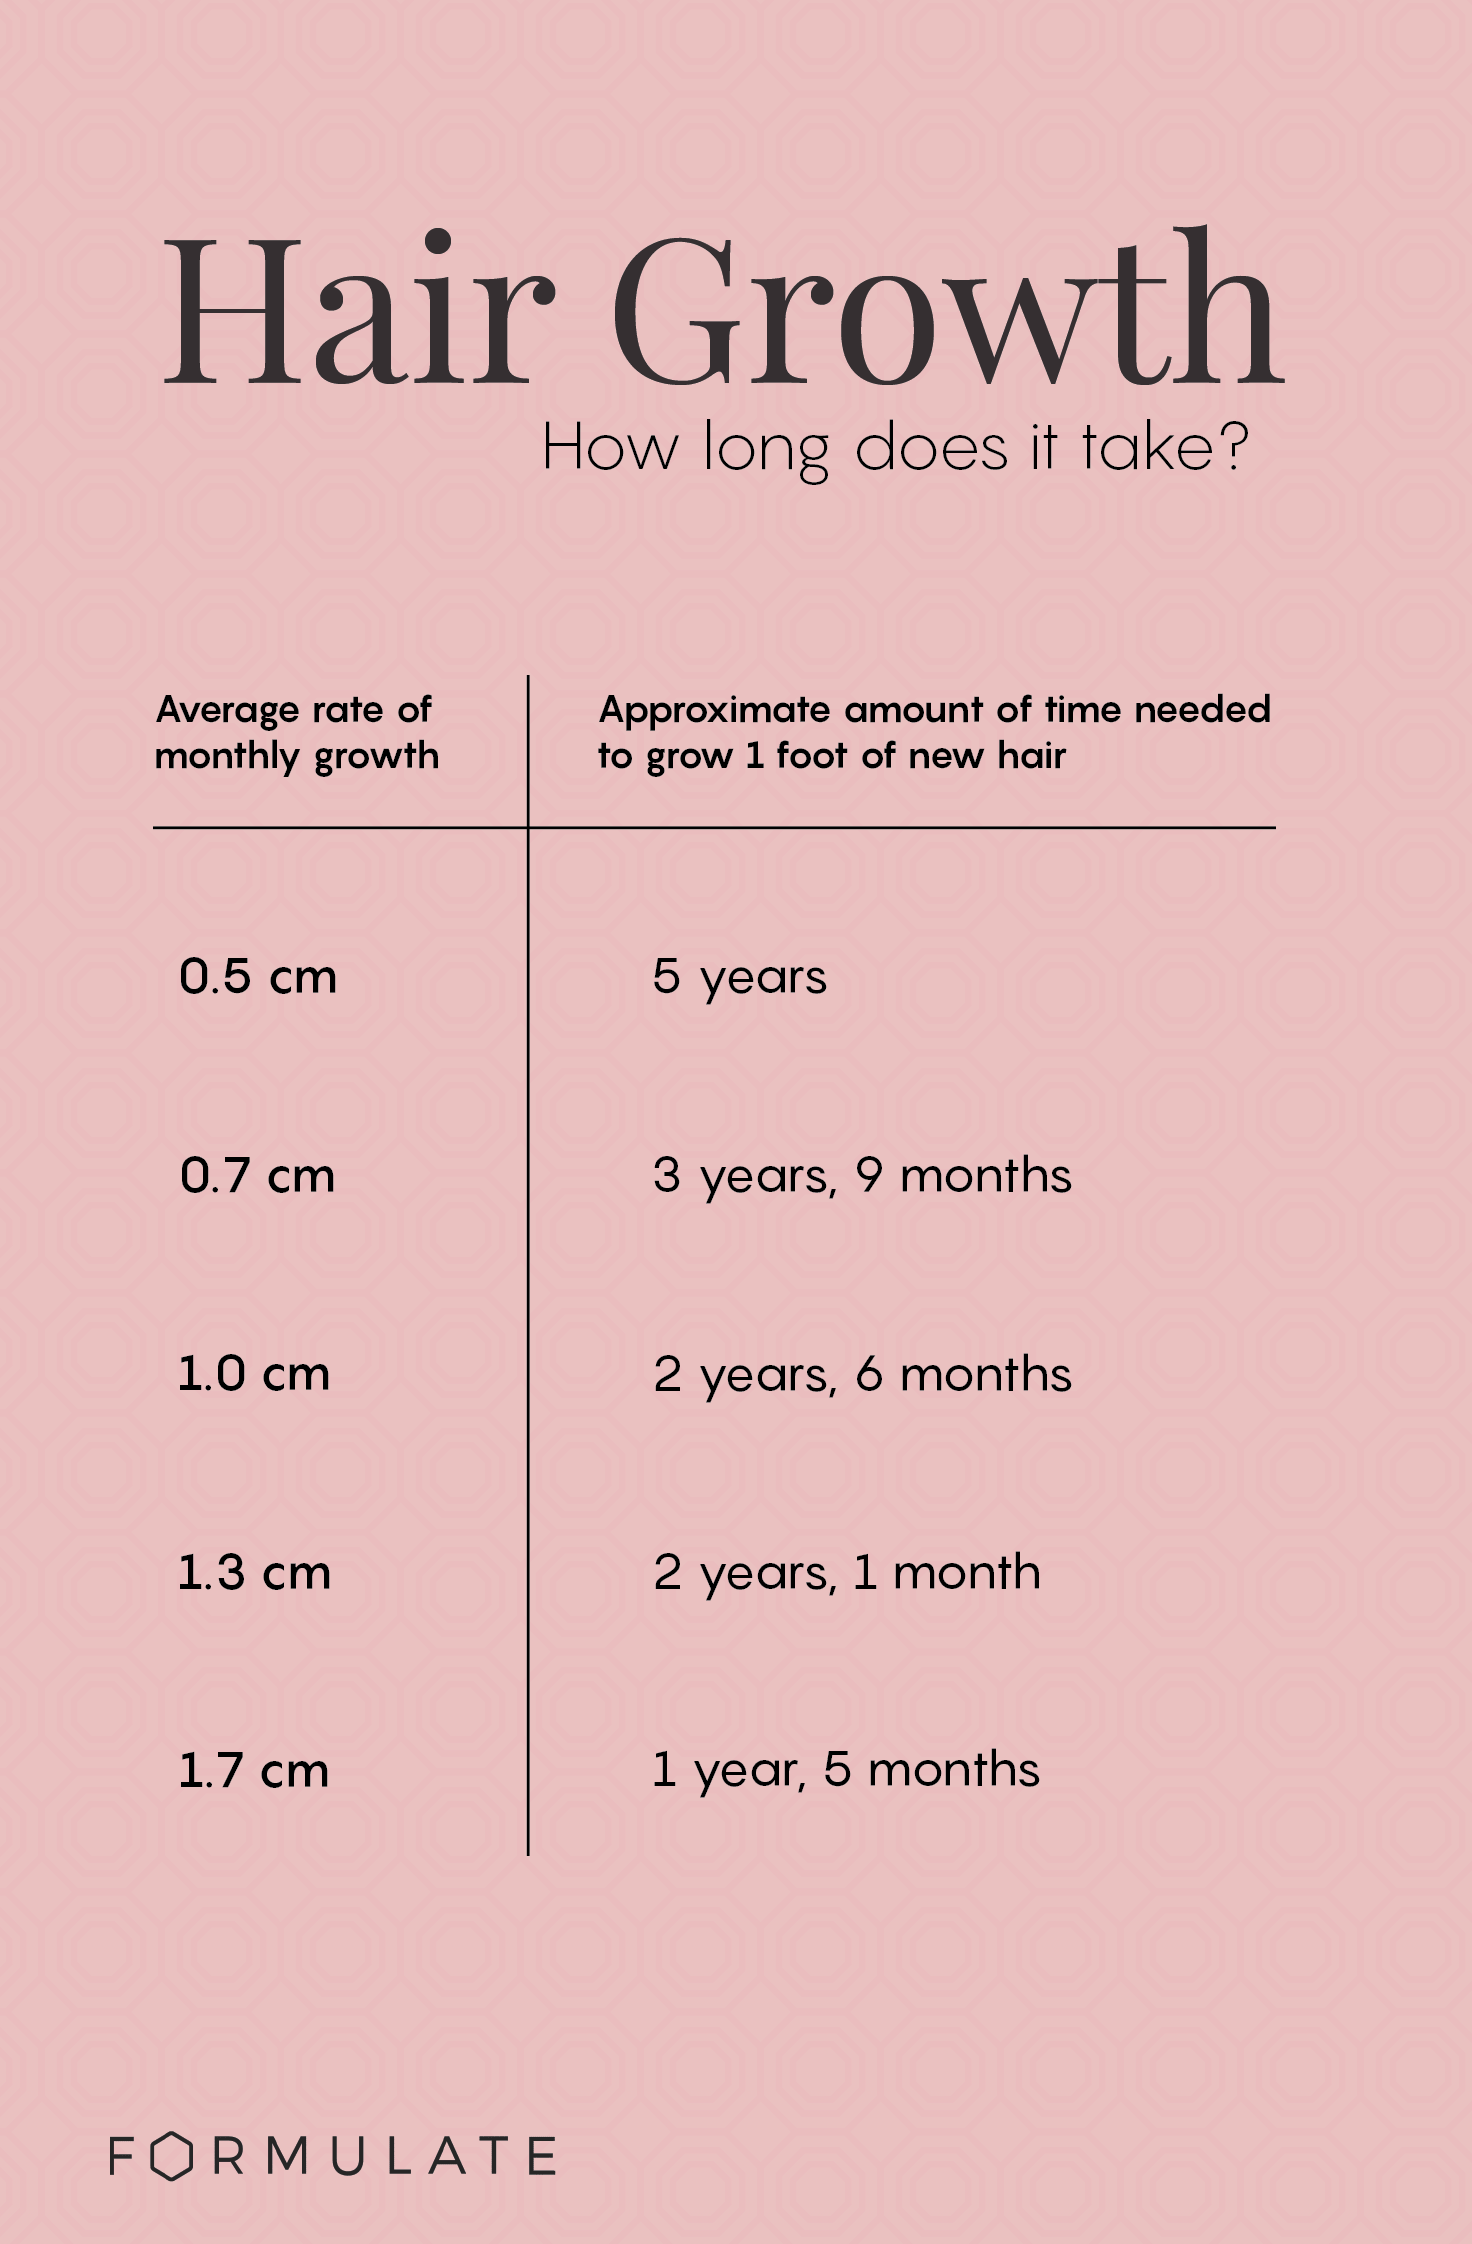 infographic chart to display timelines of hair growth. Chart displays monthly rate of growth needed for hair length of 1 foot.